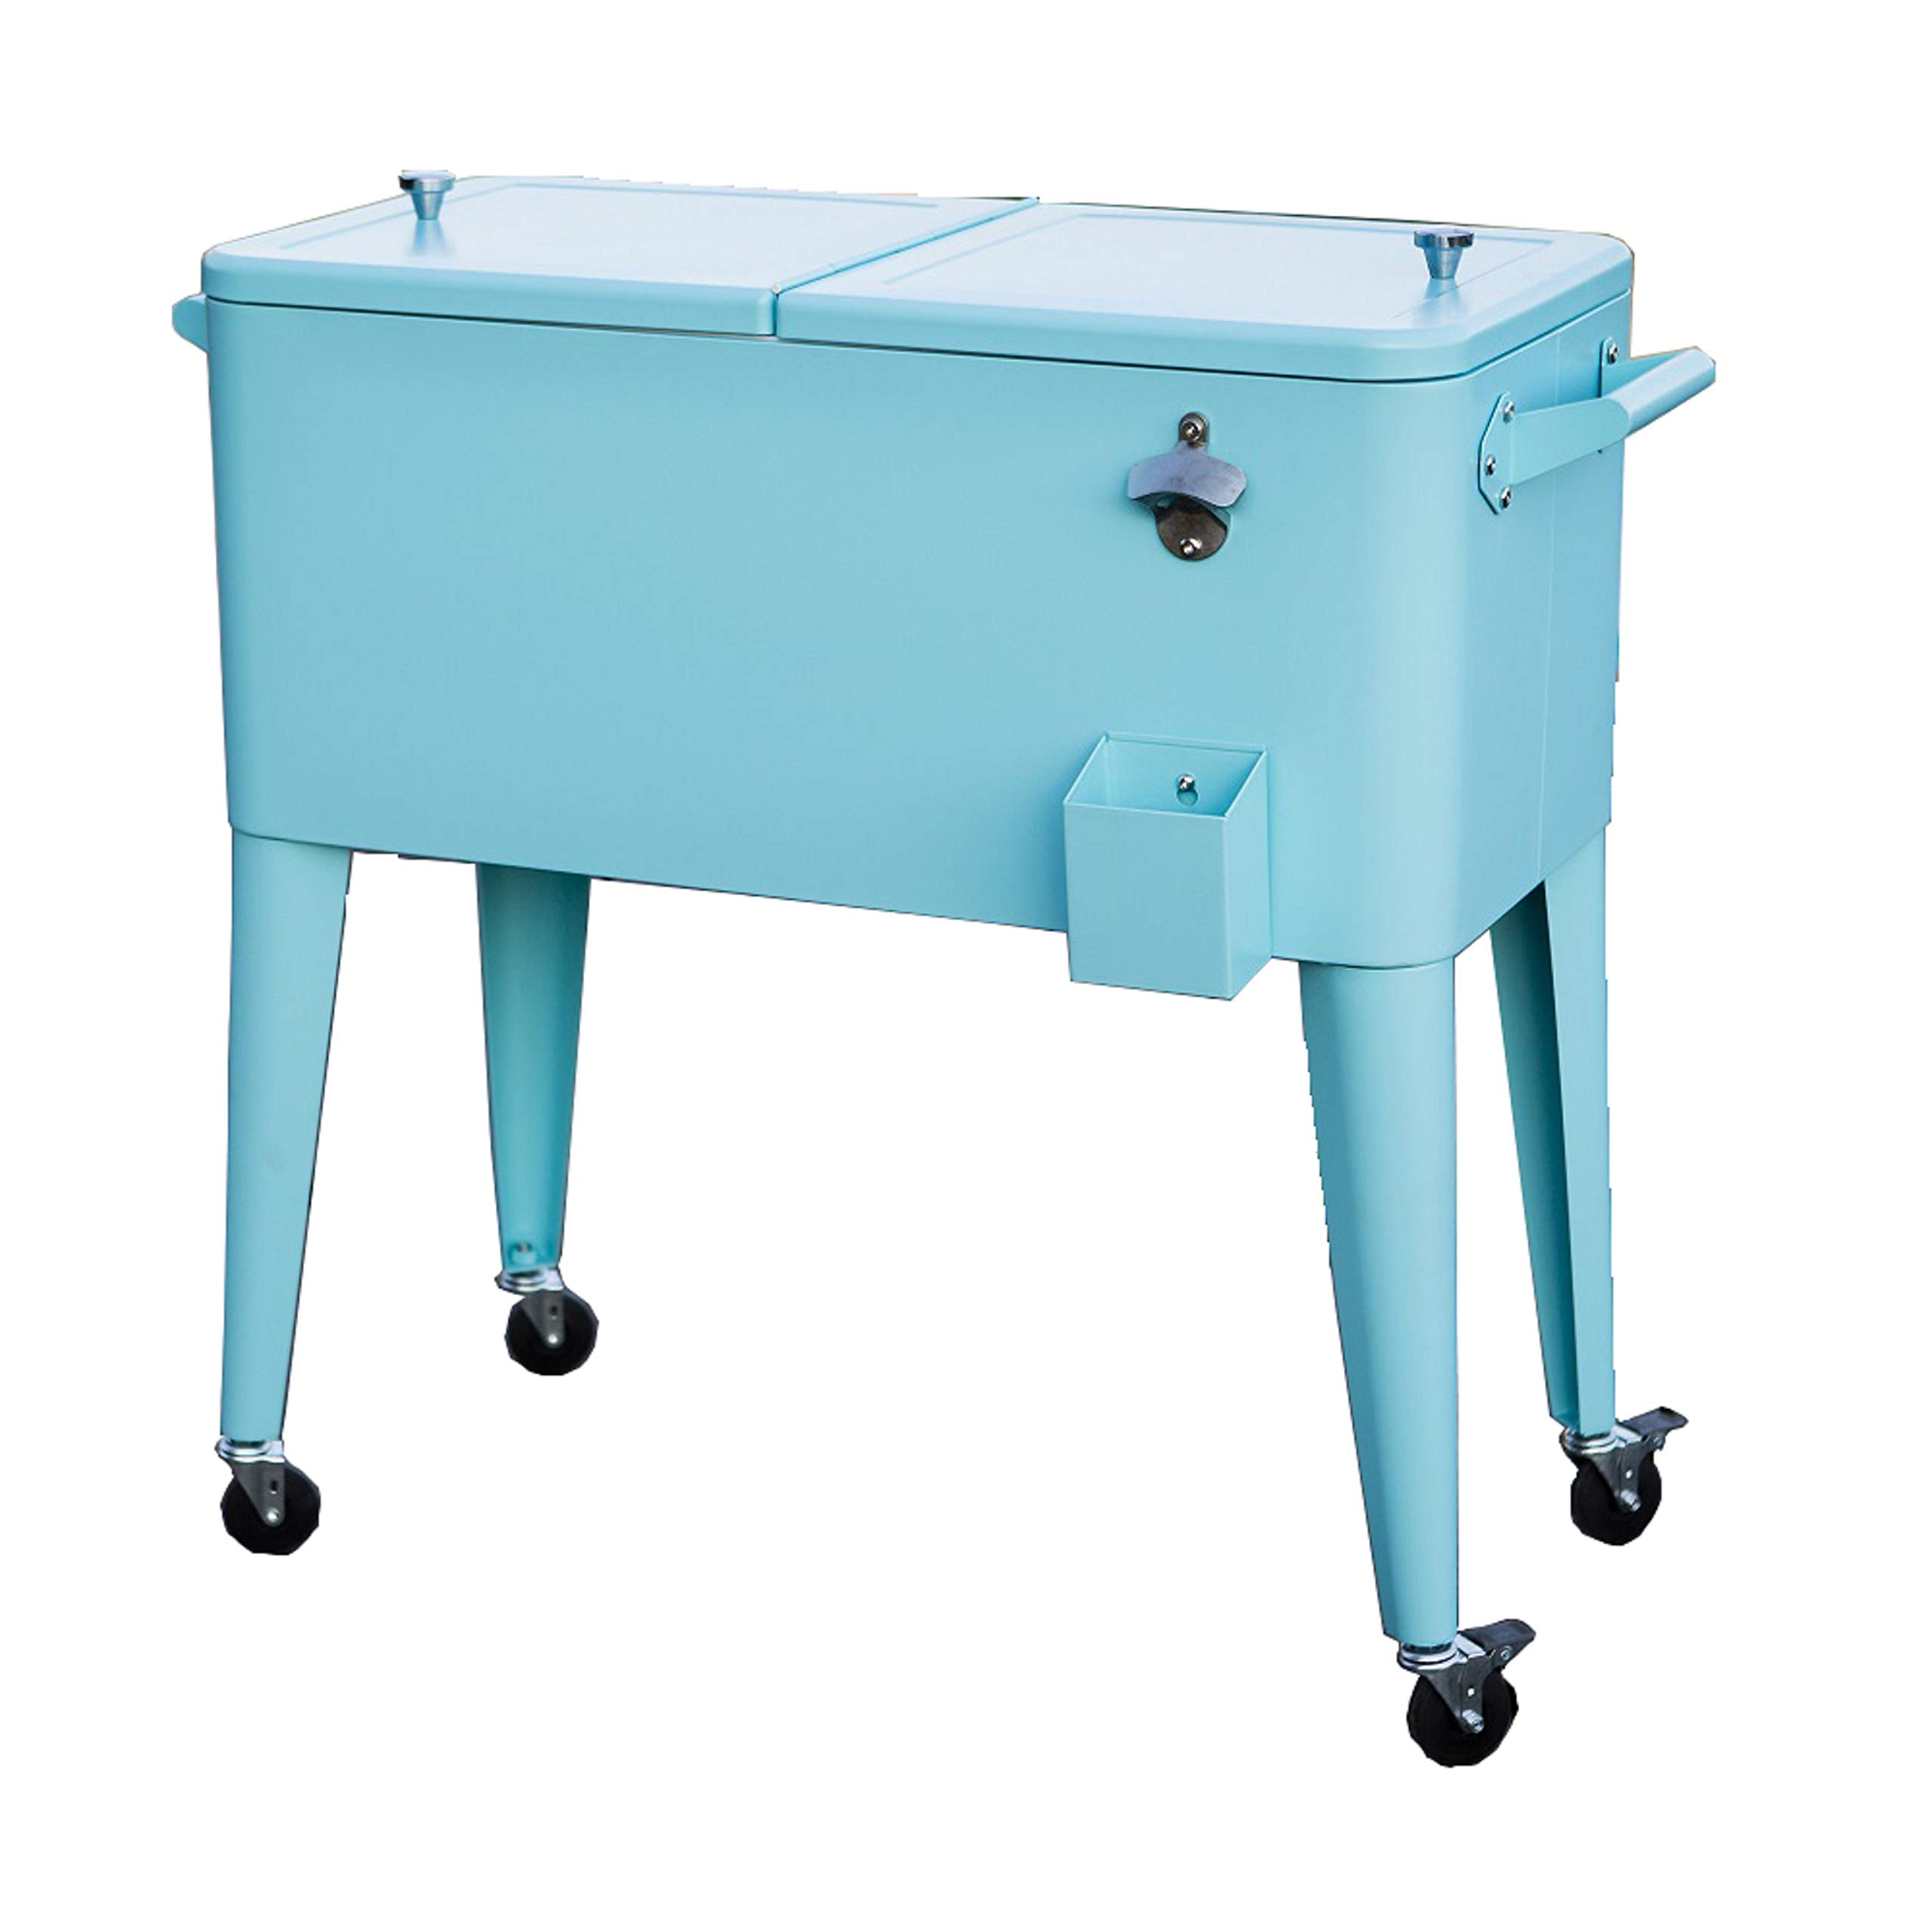 Permasteel PS-203-TURQ-AM 80 Quart Portable Rolling Patio Cooler, Turquoise by Permasteel